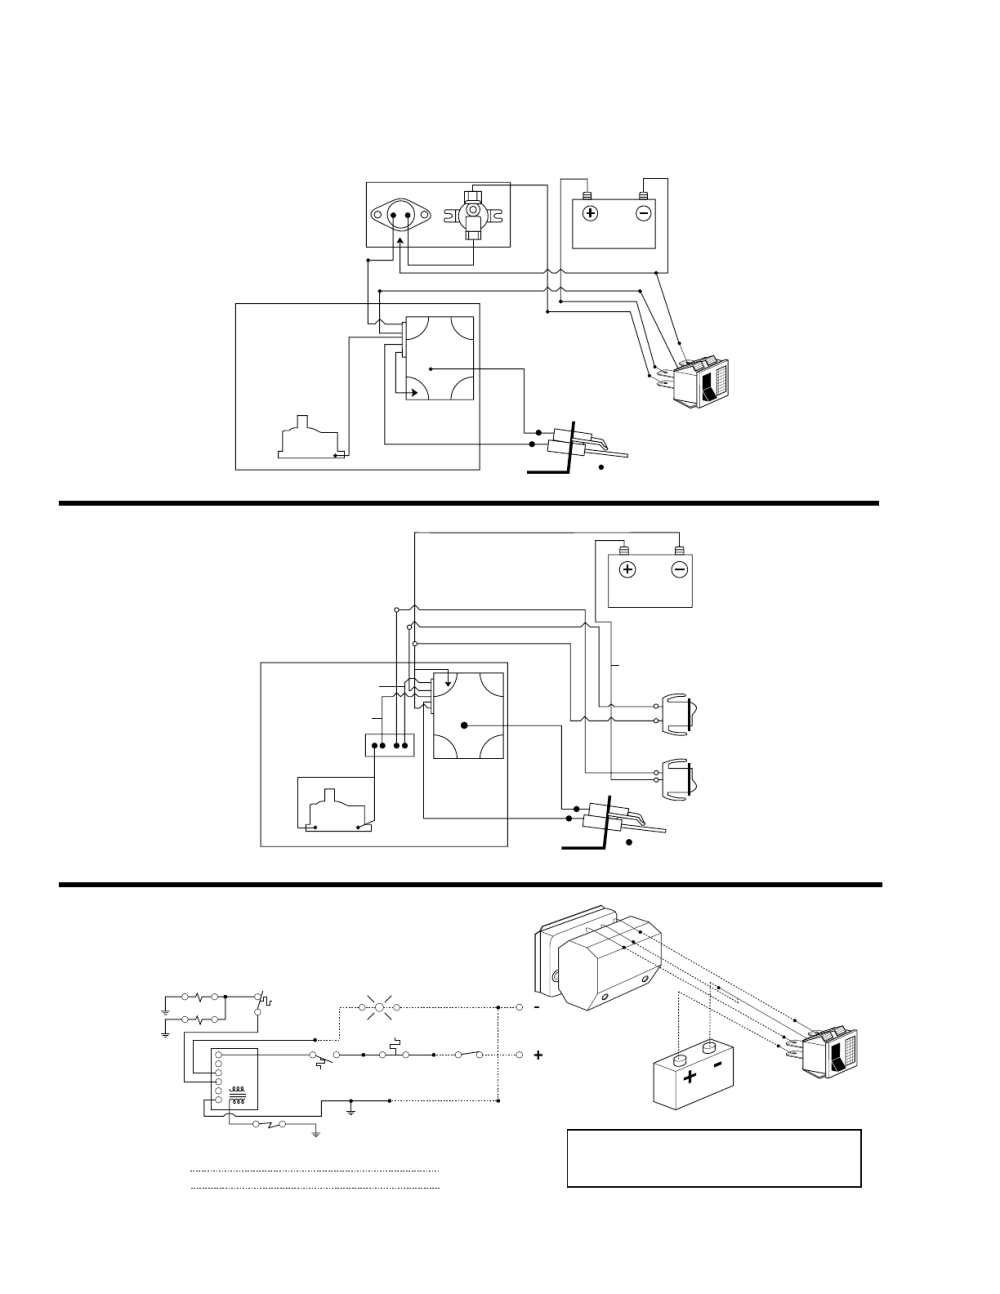 medium resolution of atwood g6a 8e water heater diagram